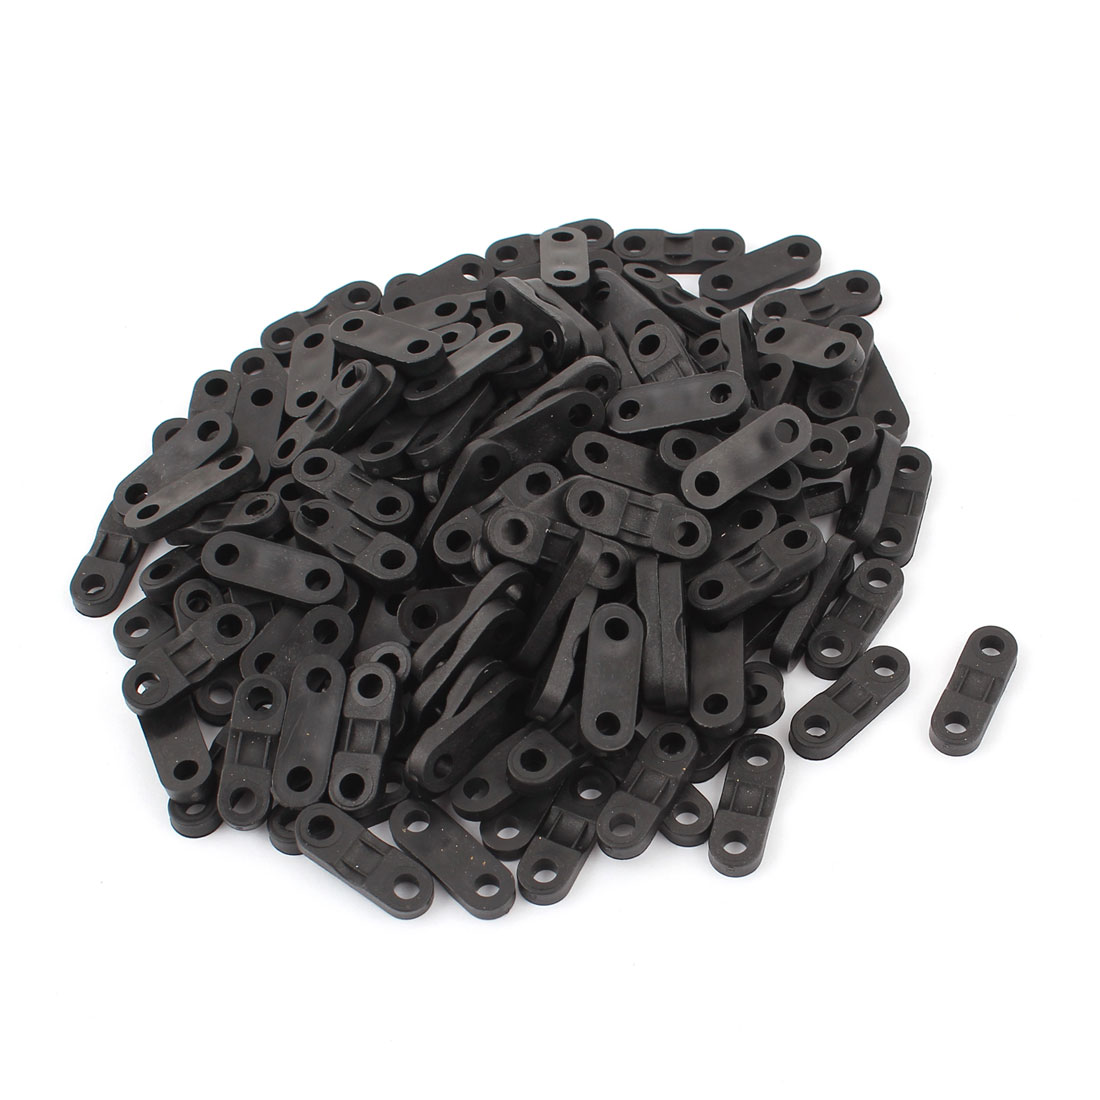 160pcs Black Plastic Cable Clamp Saddle Wire Tie Mount Screw Fixed Base Fastener